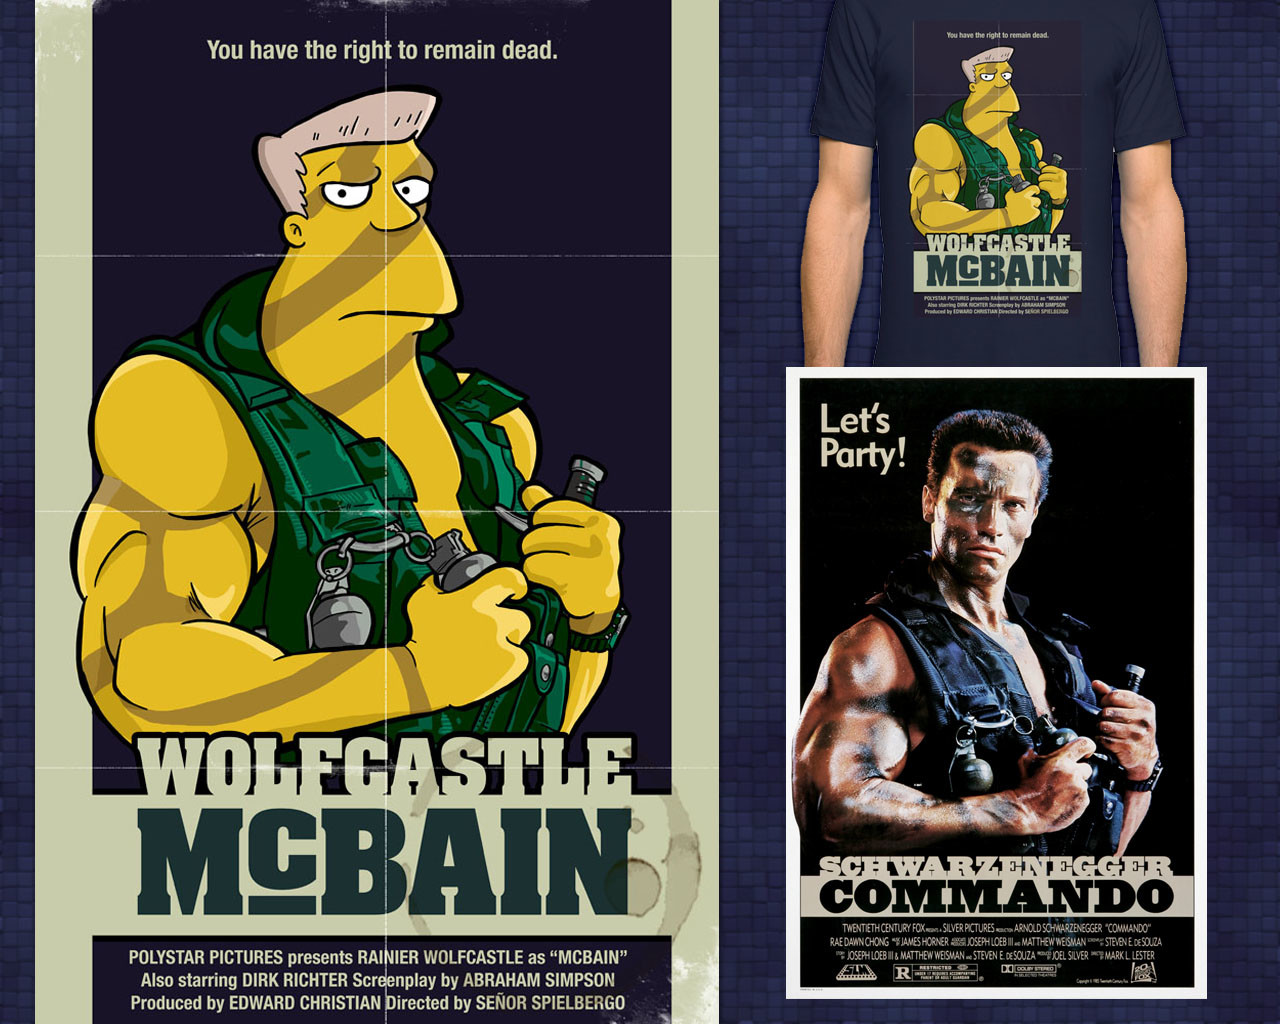 McBain, with references